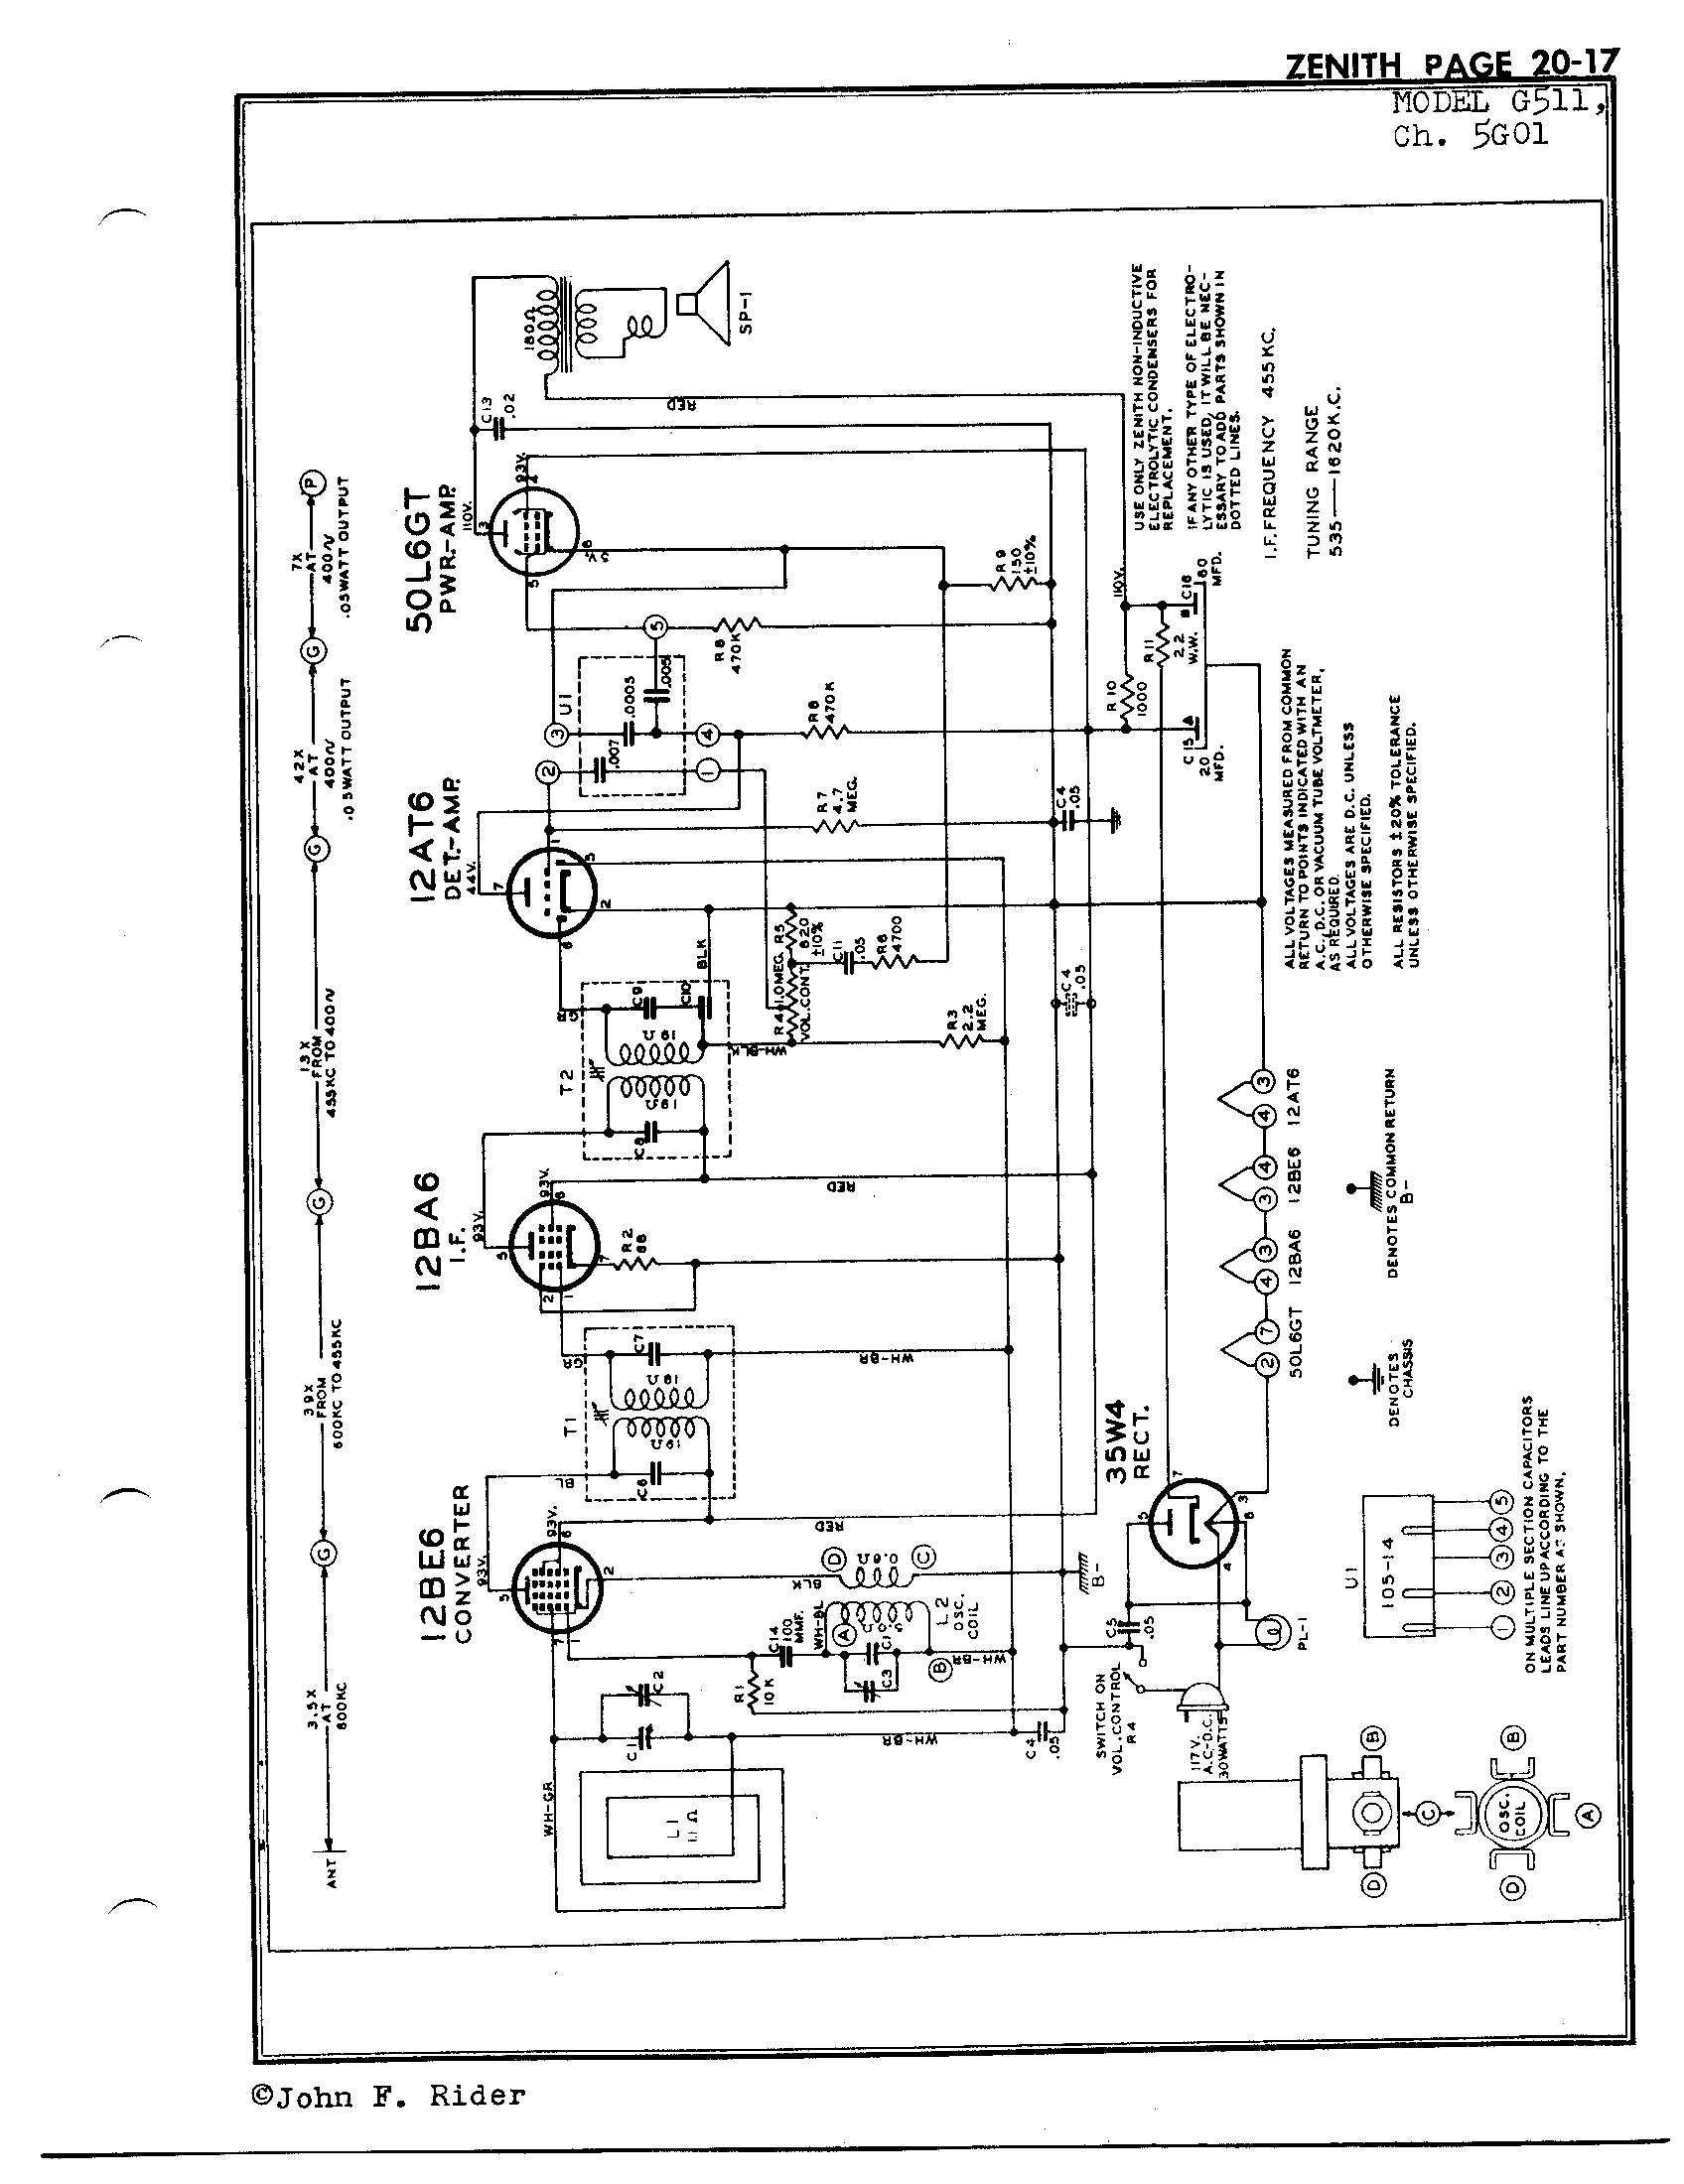 Zenith Radio Corp G511 Antique Electronic Supply. Page 1 4803 Kb Rider Manual Volume 20. Wiring. Zenith Tube Radio Schematics N73 1 At Scoala.co